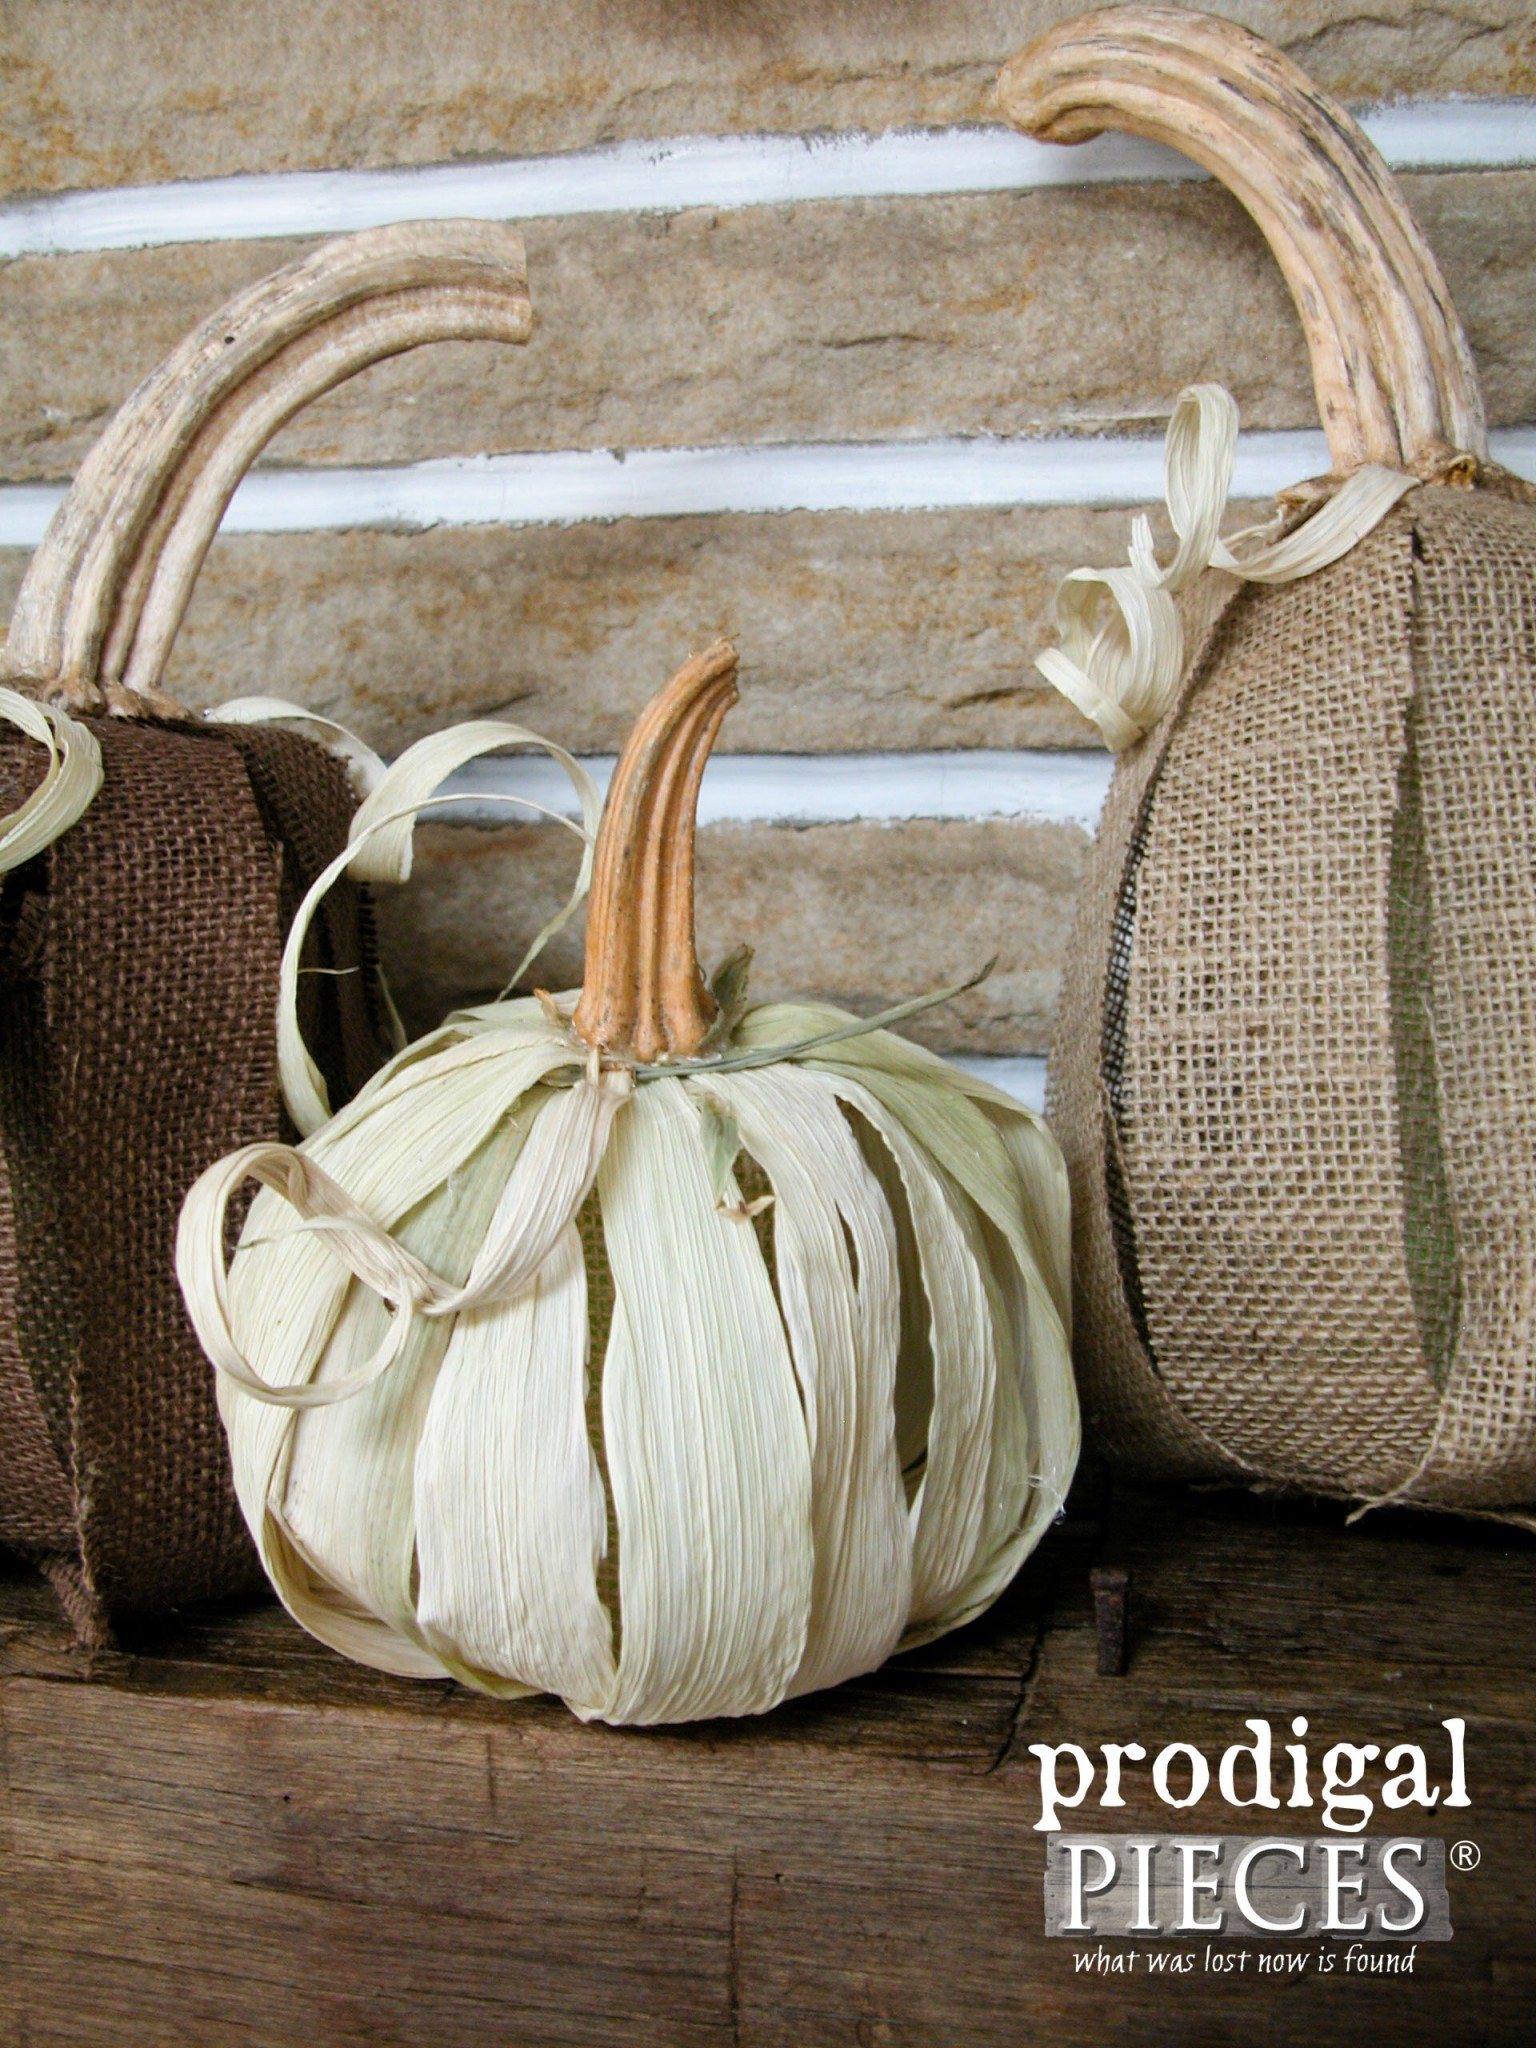 Make a Rustic Farmhouse Pumpkin from Corn Husk with this Tutorial by Prodigal Pieces | www.prodigalpieces.com